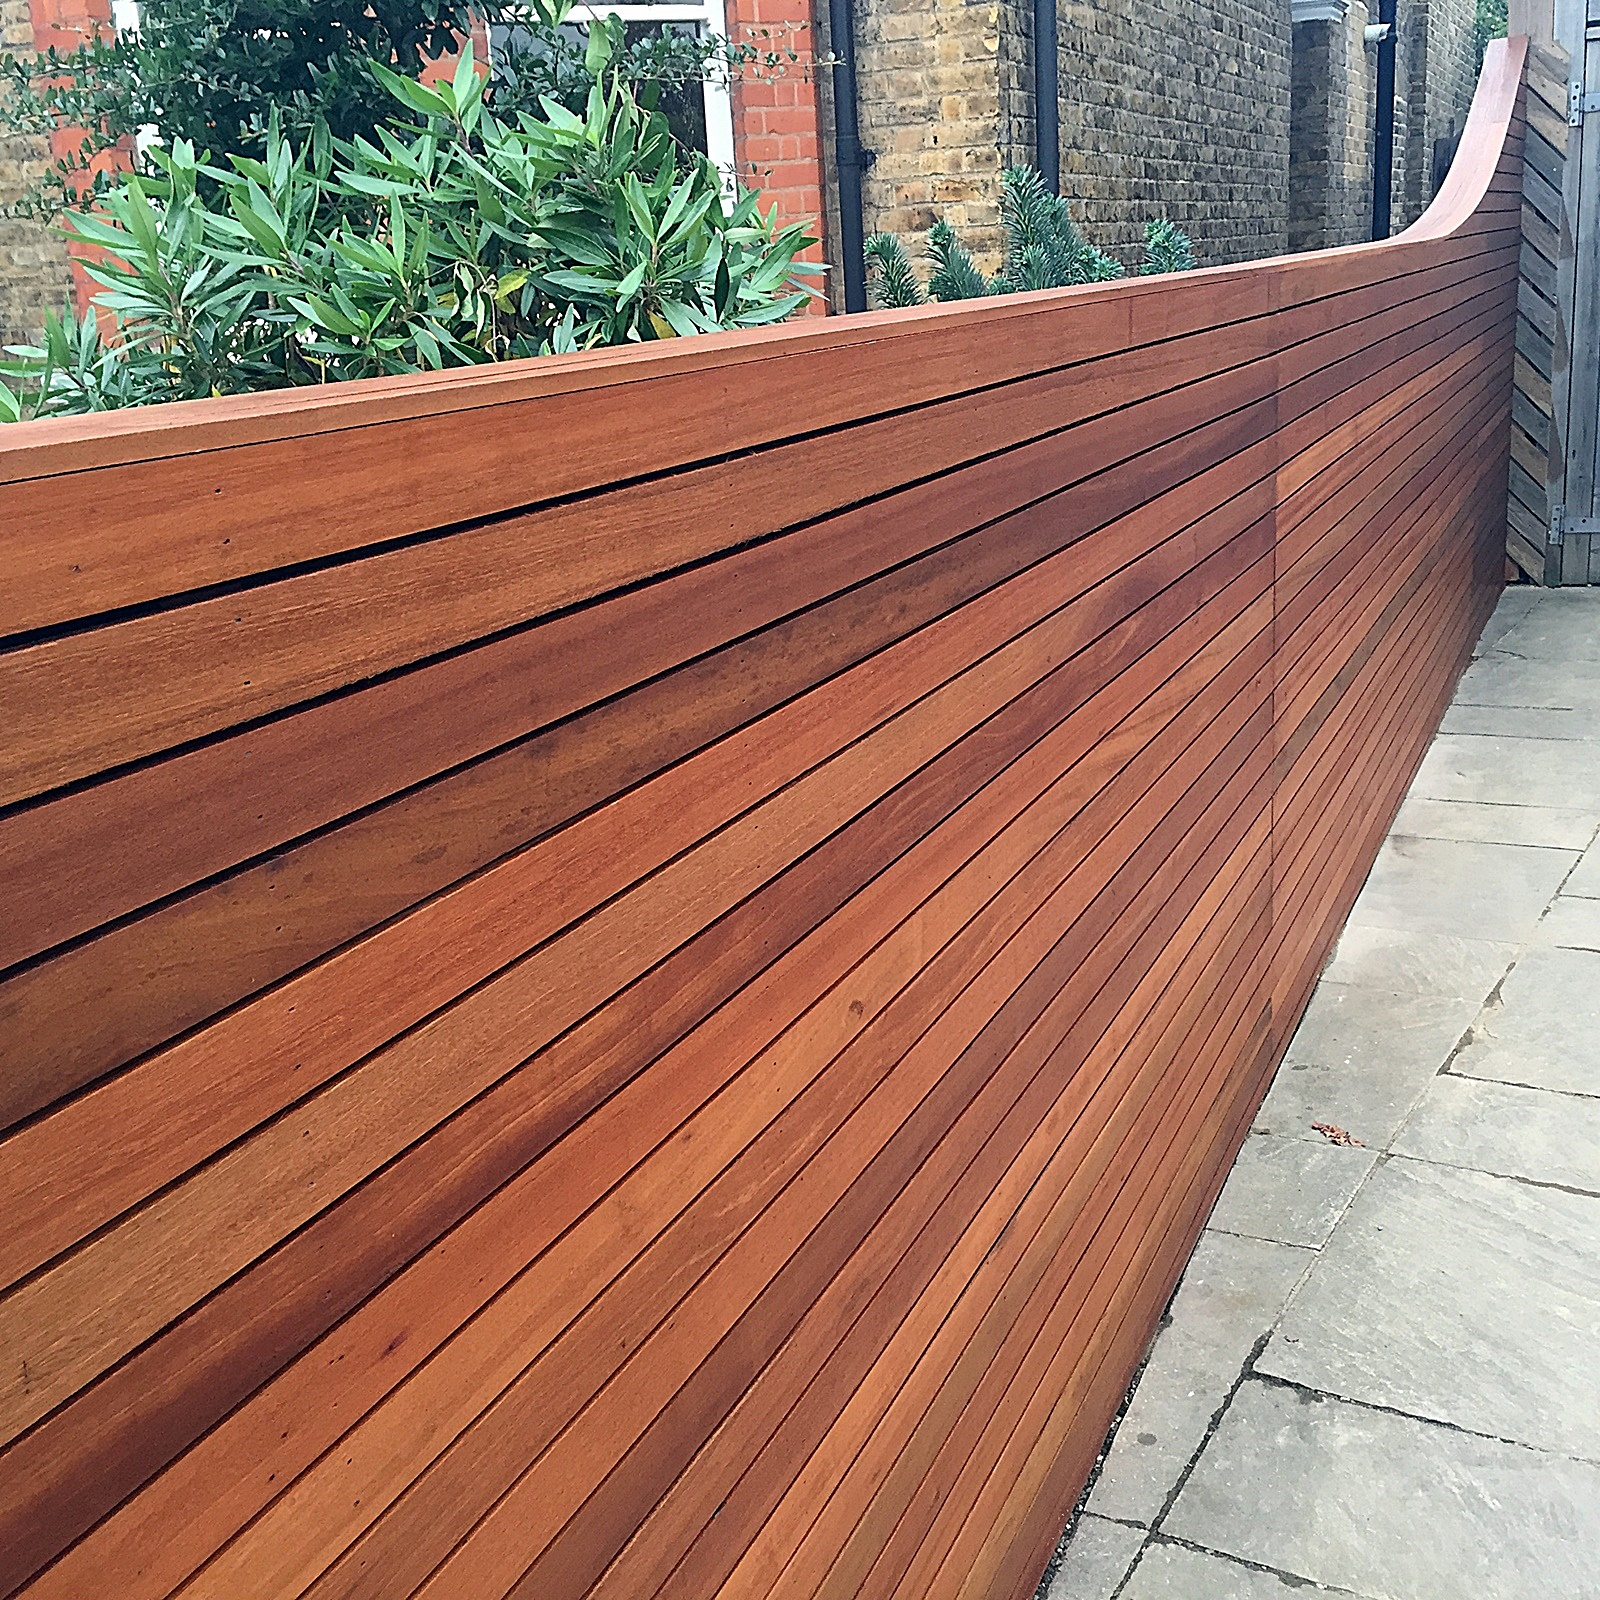 horizontal cedar hardwood strip wood trellis screen fence oiled curved balham clapham battersea dulwich fulham chelsea mayfair clapham london